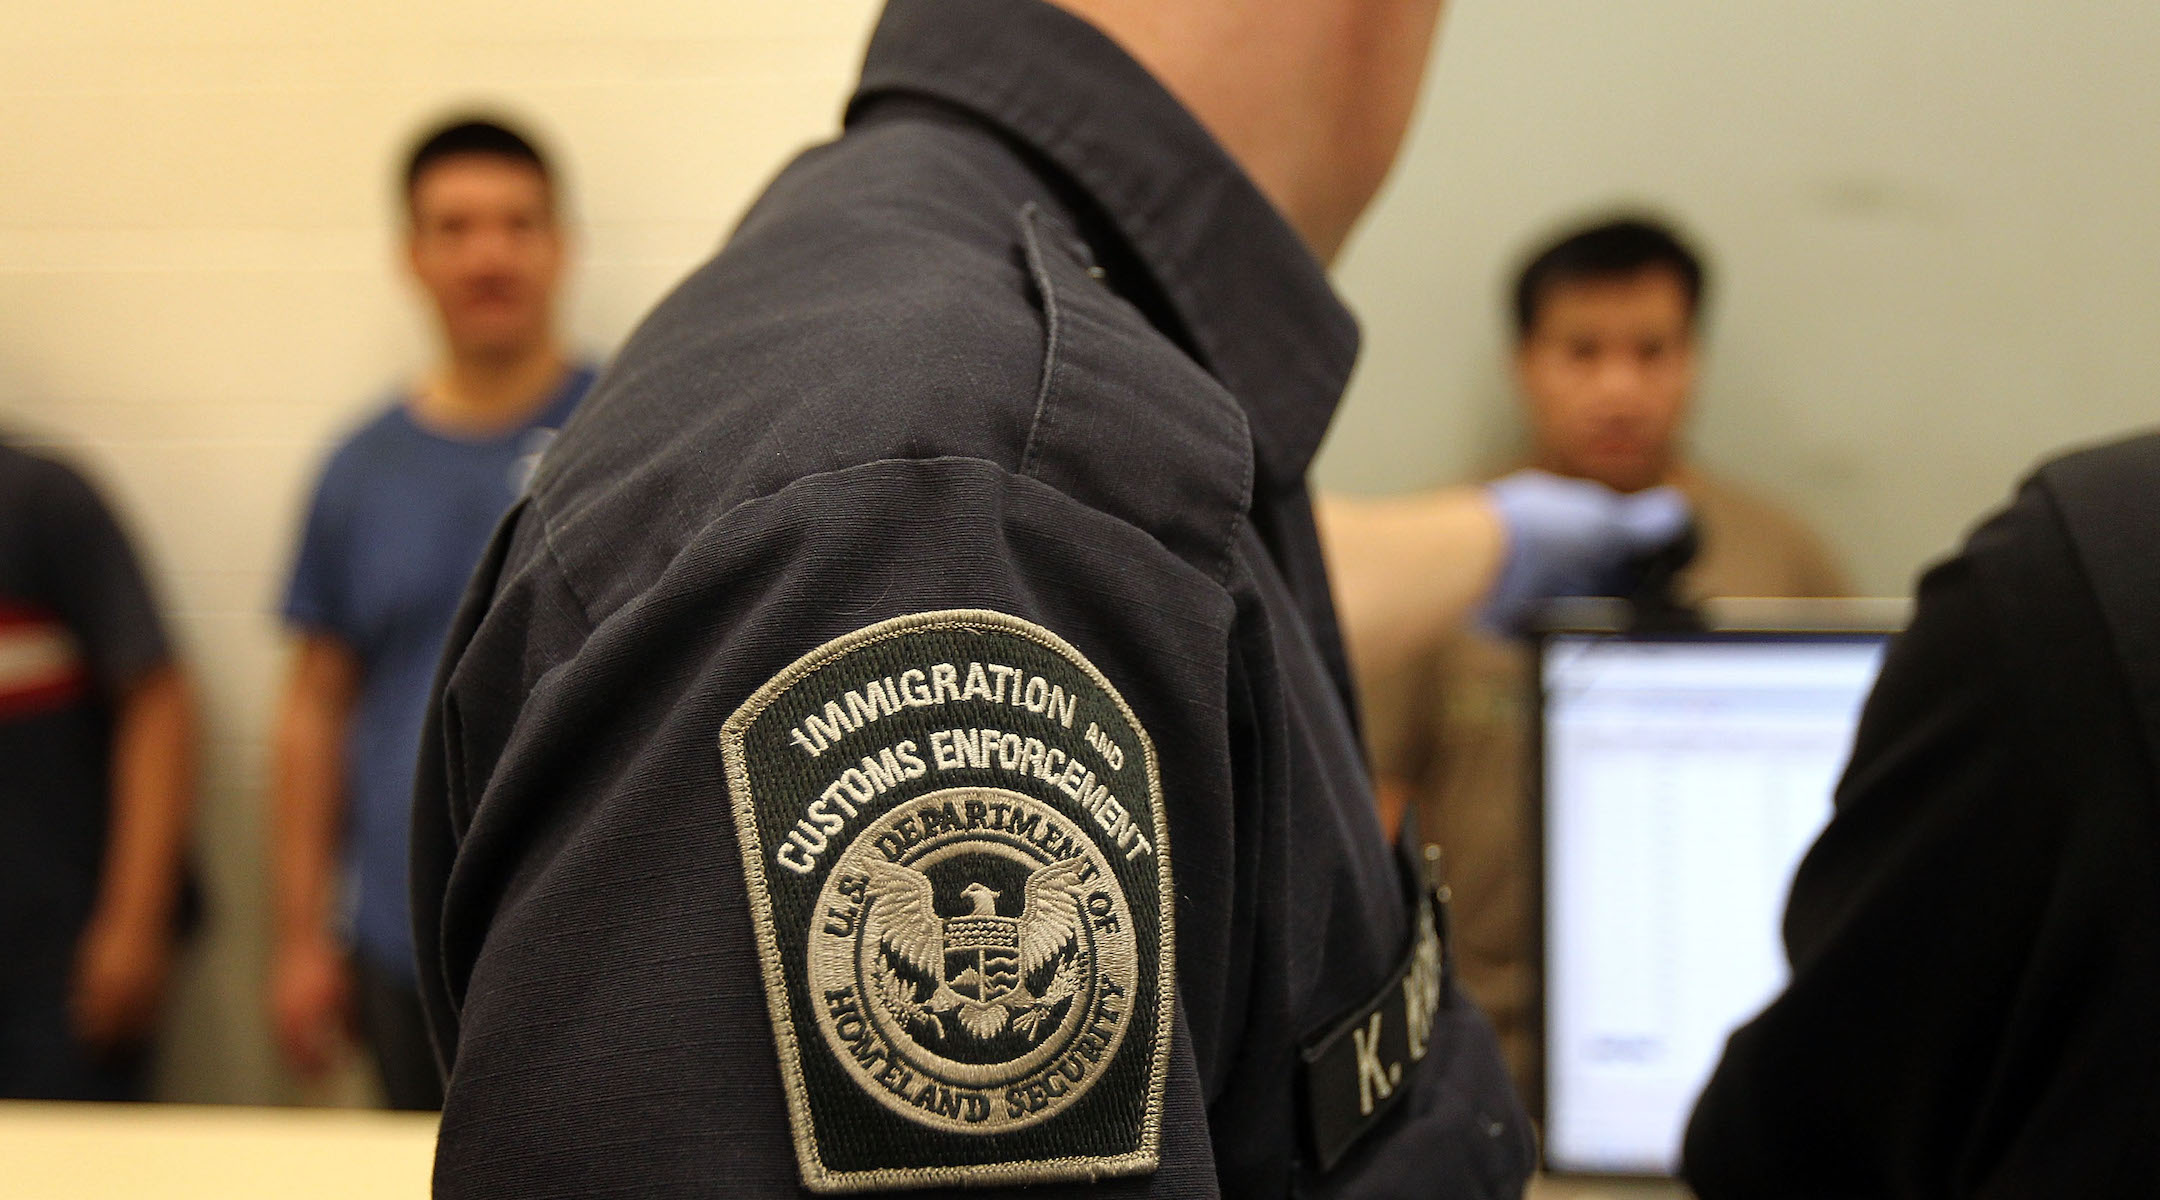 Undocumented Mexican immigrants are photographed while being processed at the Immigration and Customs Enforcement center in Phoenix, Ariz., April 28, 2010. (Photo/JTA-John Moore-Getty Images)